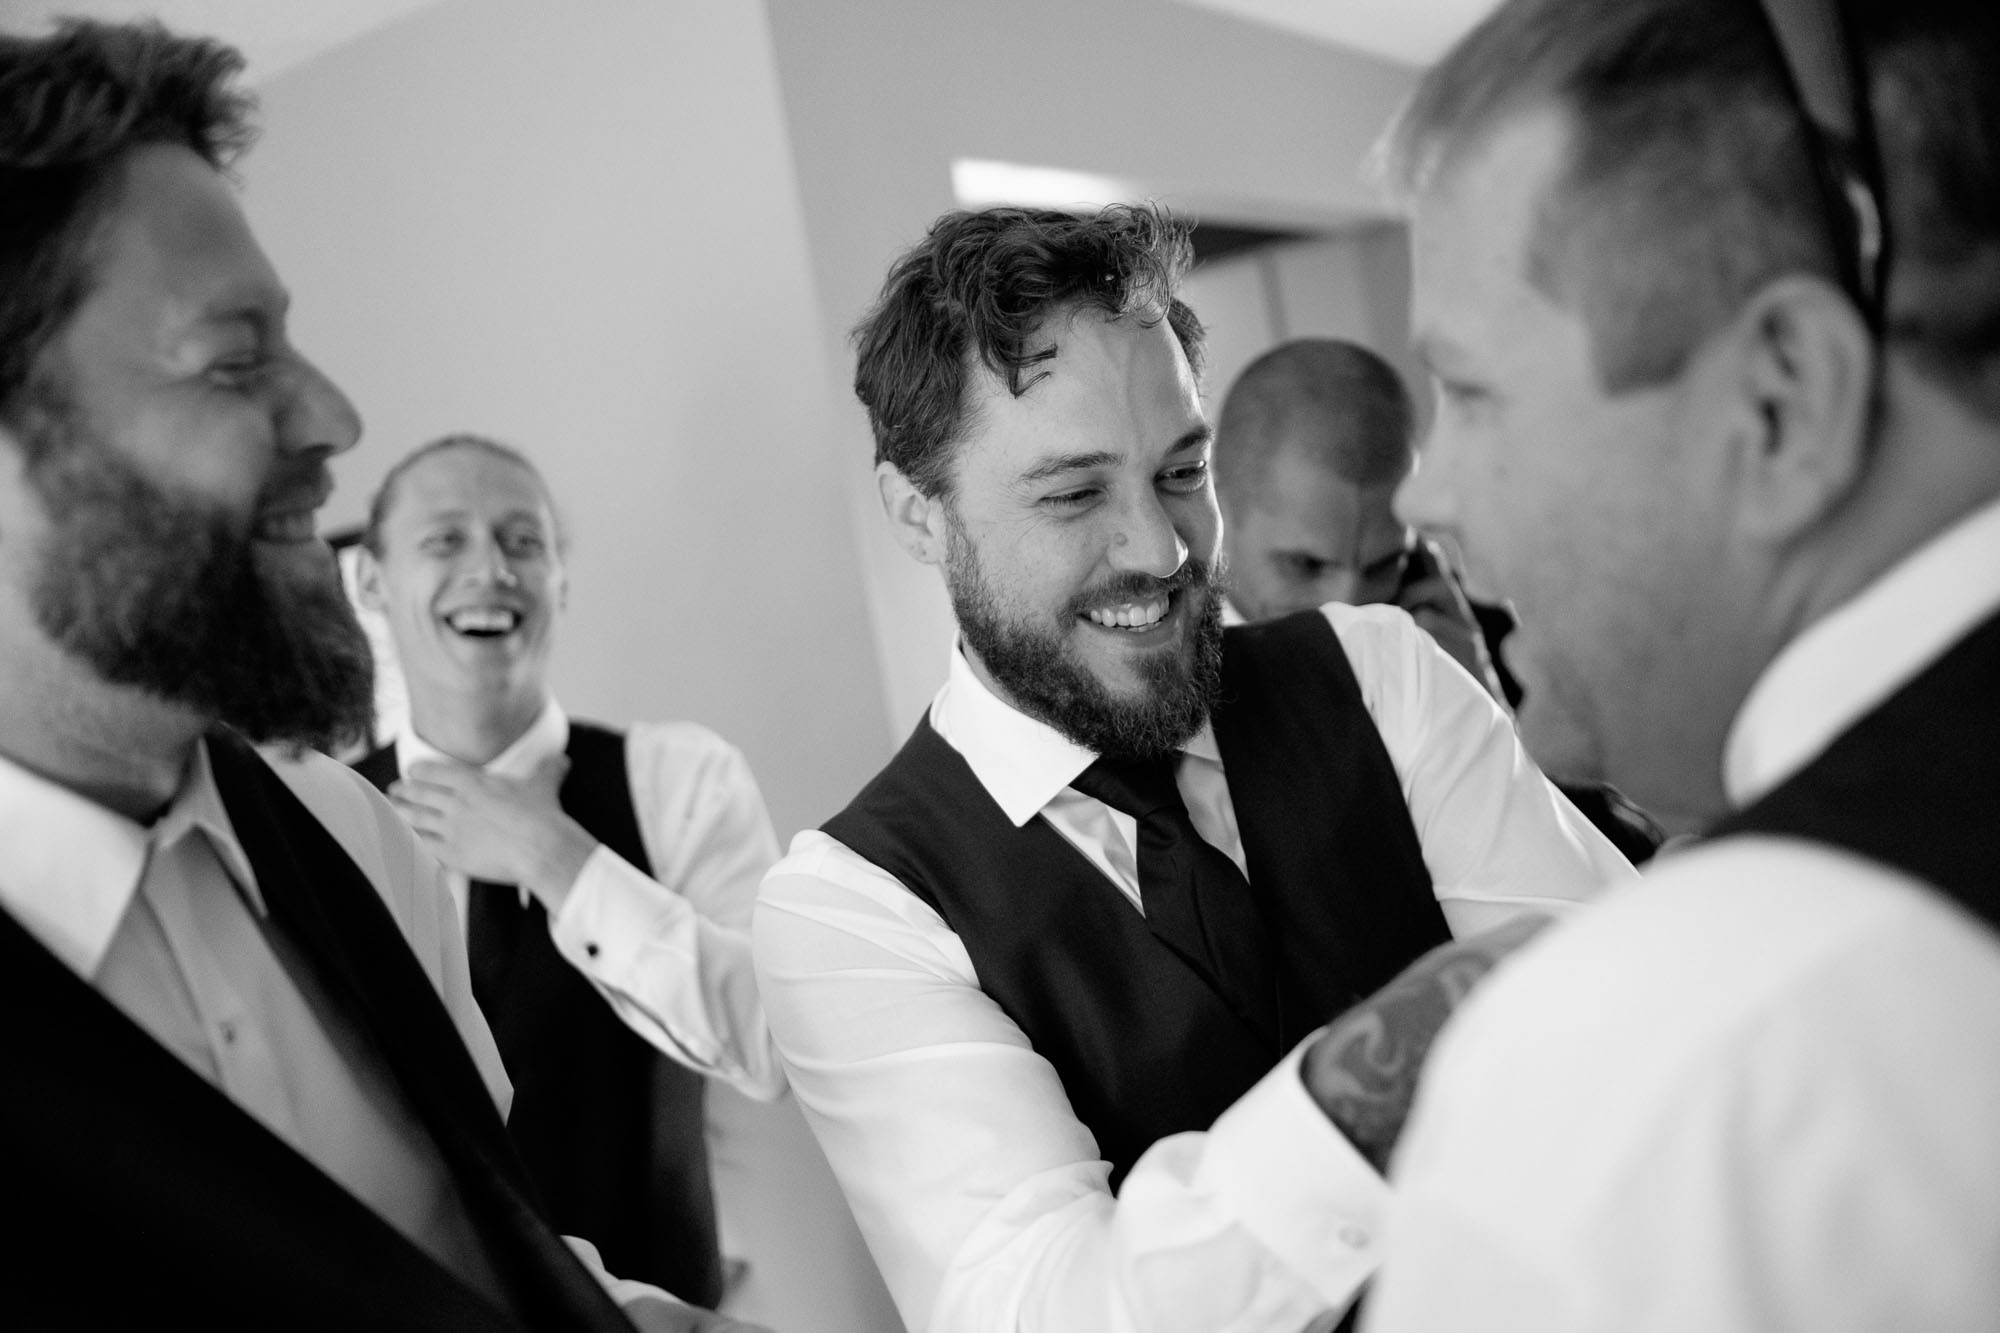 Adam adjusts the tie on one of his groomsmen as they all get ready for his backyard wedding in Ontario, Canada. By Scott Williams.